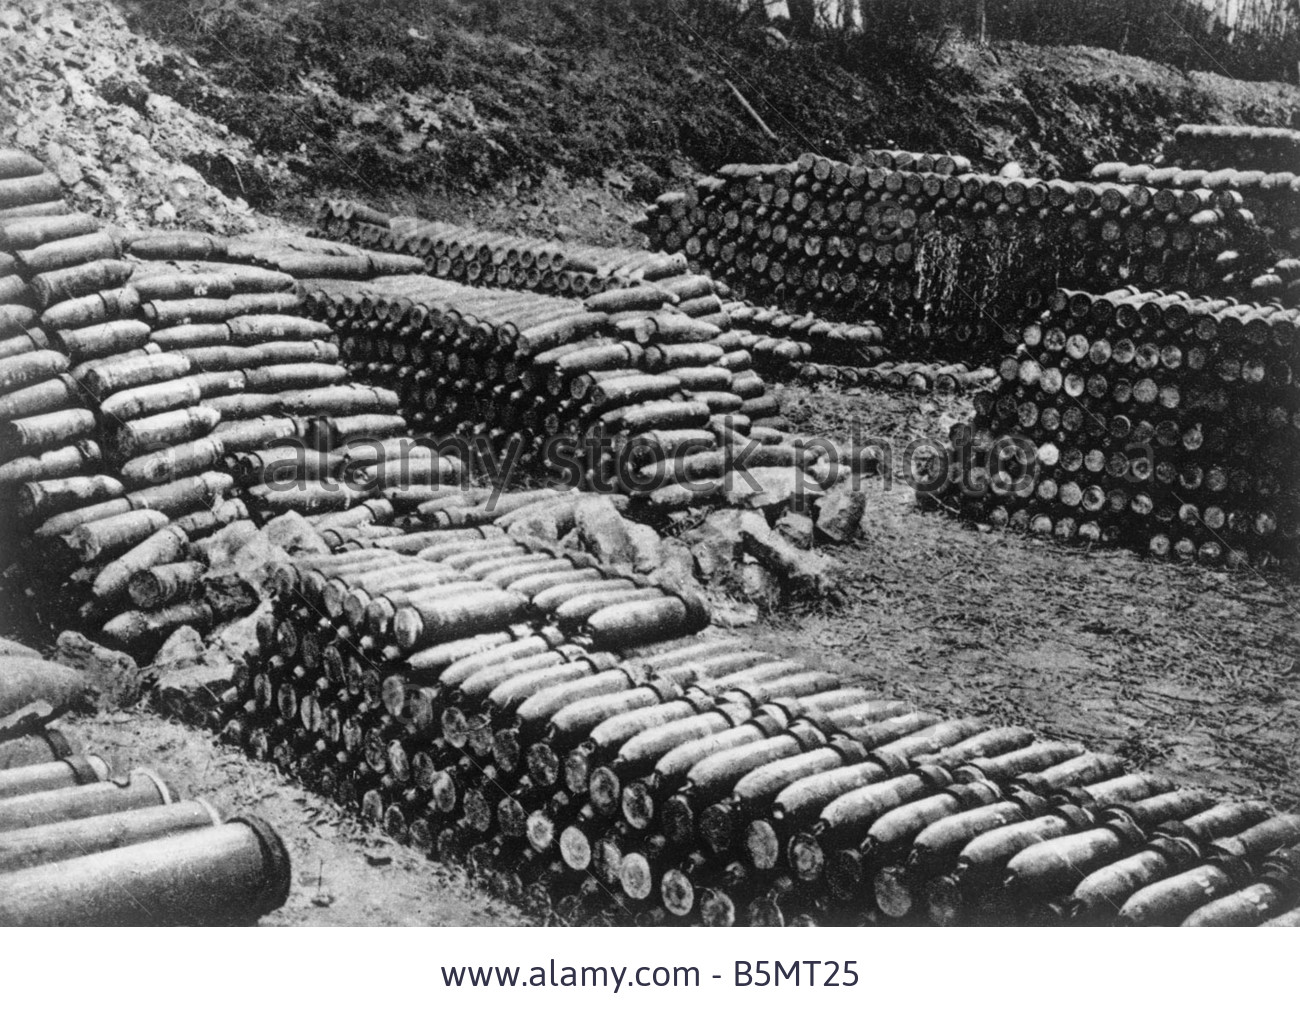 French munitions at Verdun, February 1916.